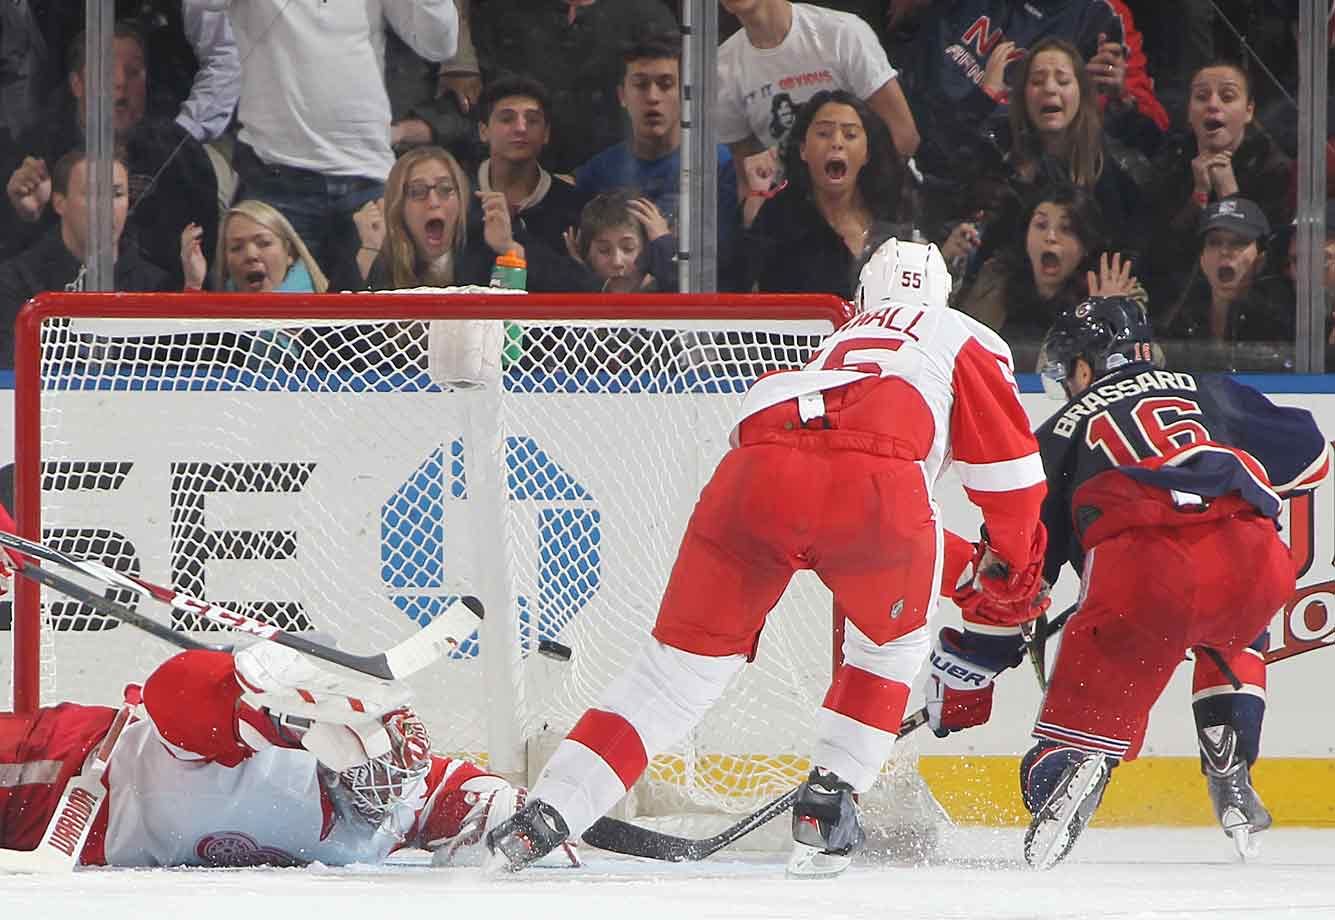 Derick Brassard of the Rangers delights the fans at Madison Square Garden by scoring the game-winning goal in overtime against Jonas Gustavsson of the Red Wings on November 5, 2014.